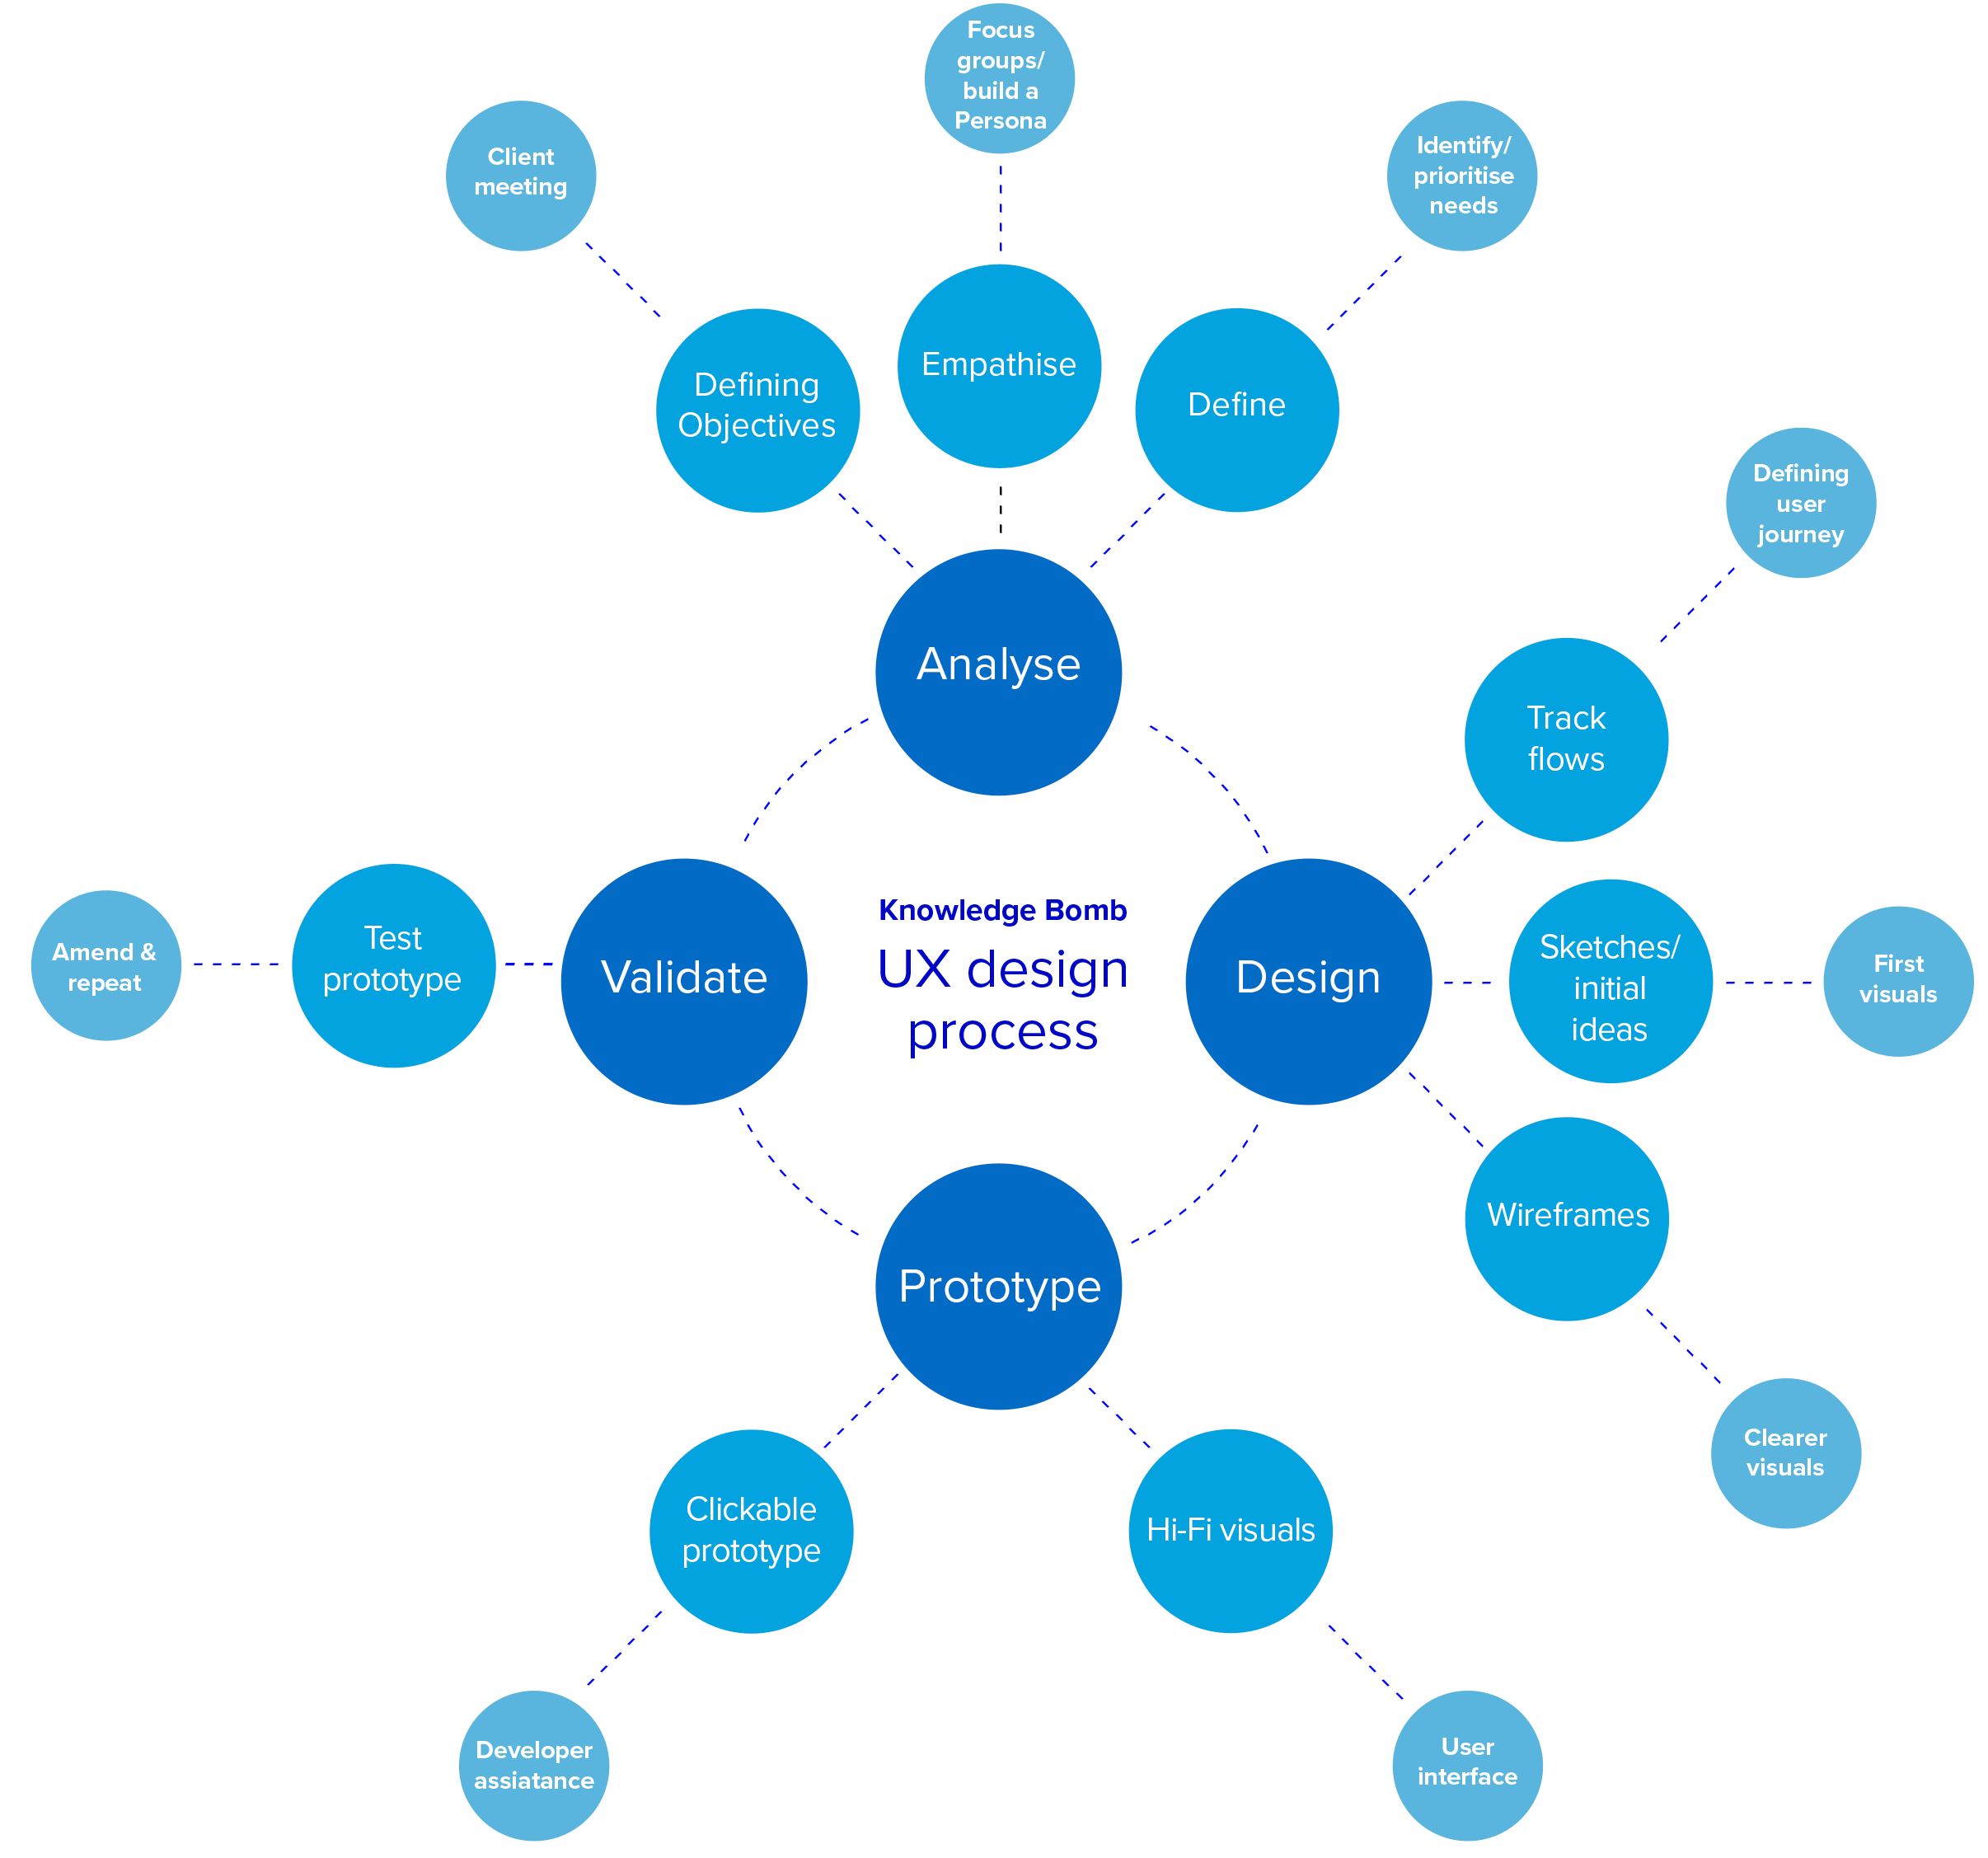 UX Process - As the Knowledge Bomb development team had no prior experience of front end web design, the process required the UI and UX designer to take the lead from the project foundations. A bespoke user centred design process was created based on 4 common variables: Analyse, Design, Prototype and Testing.